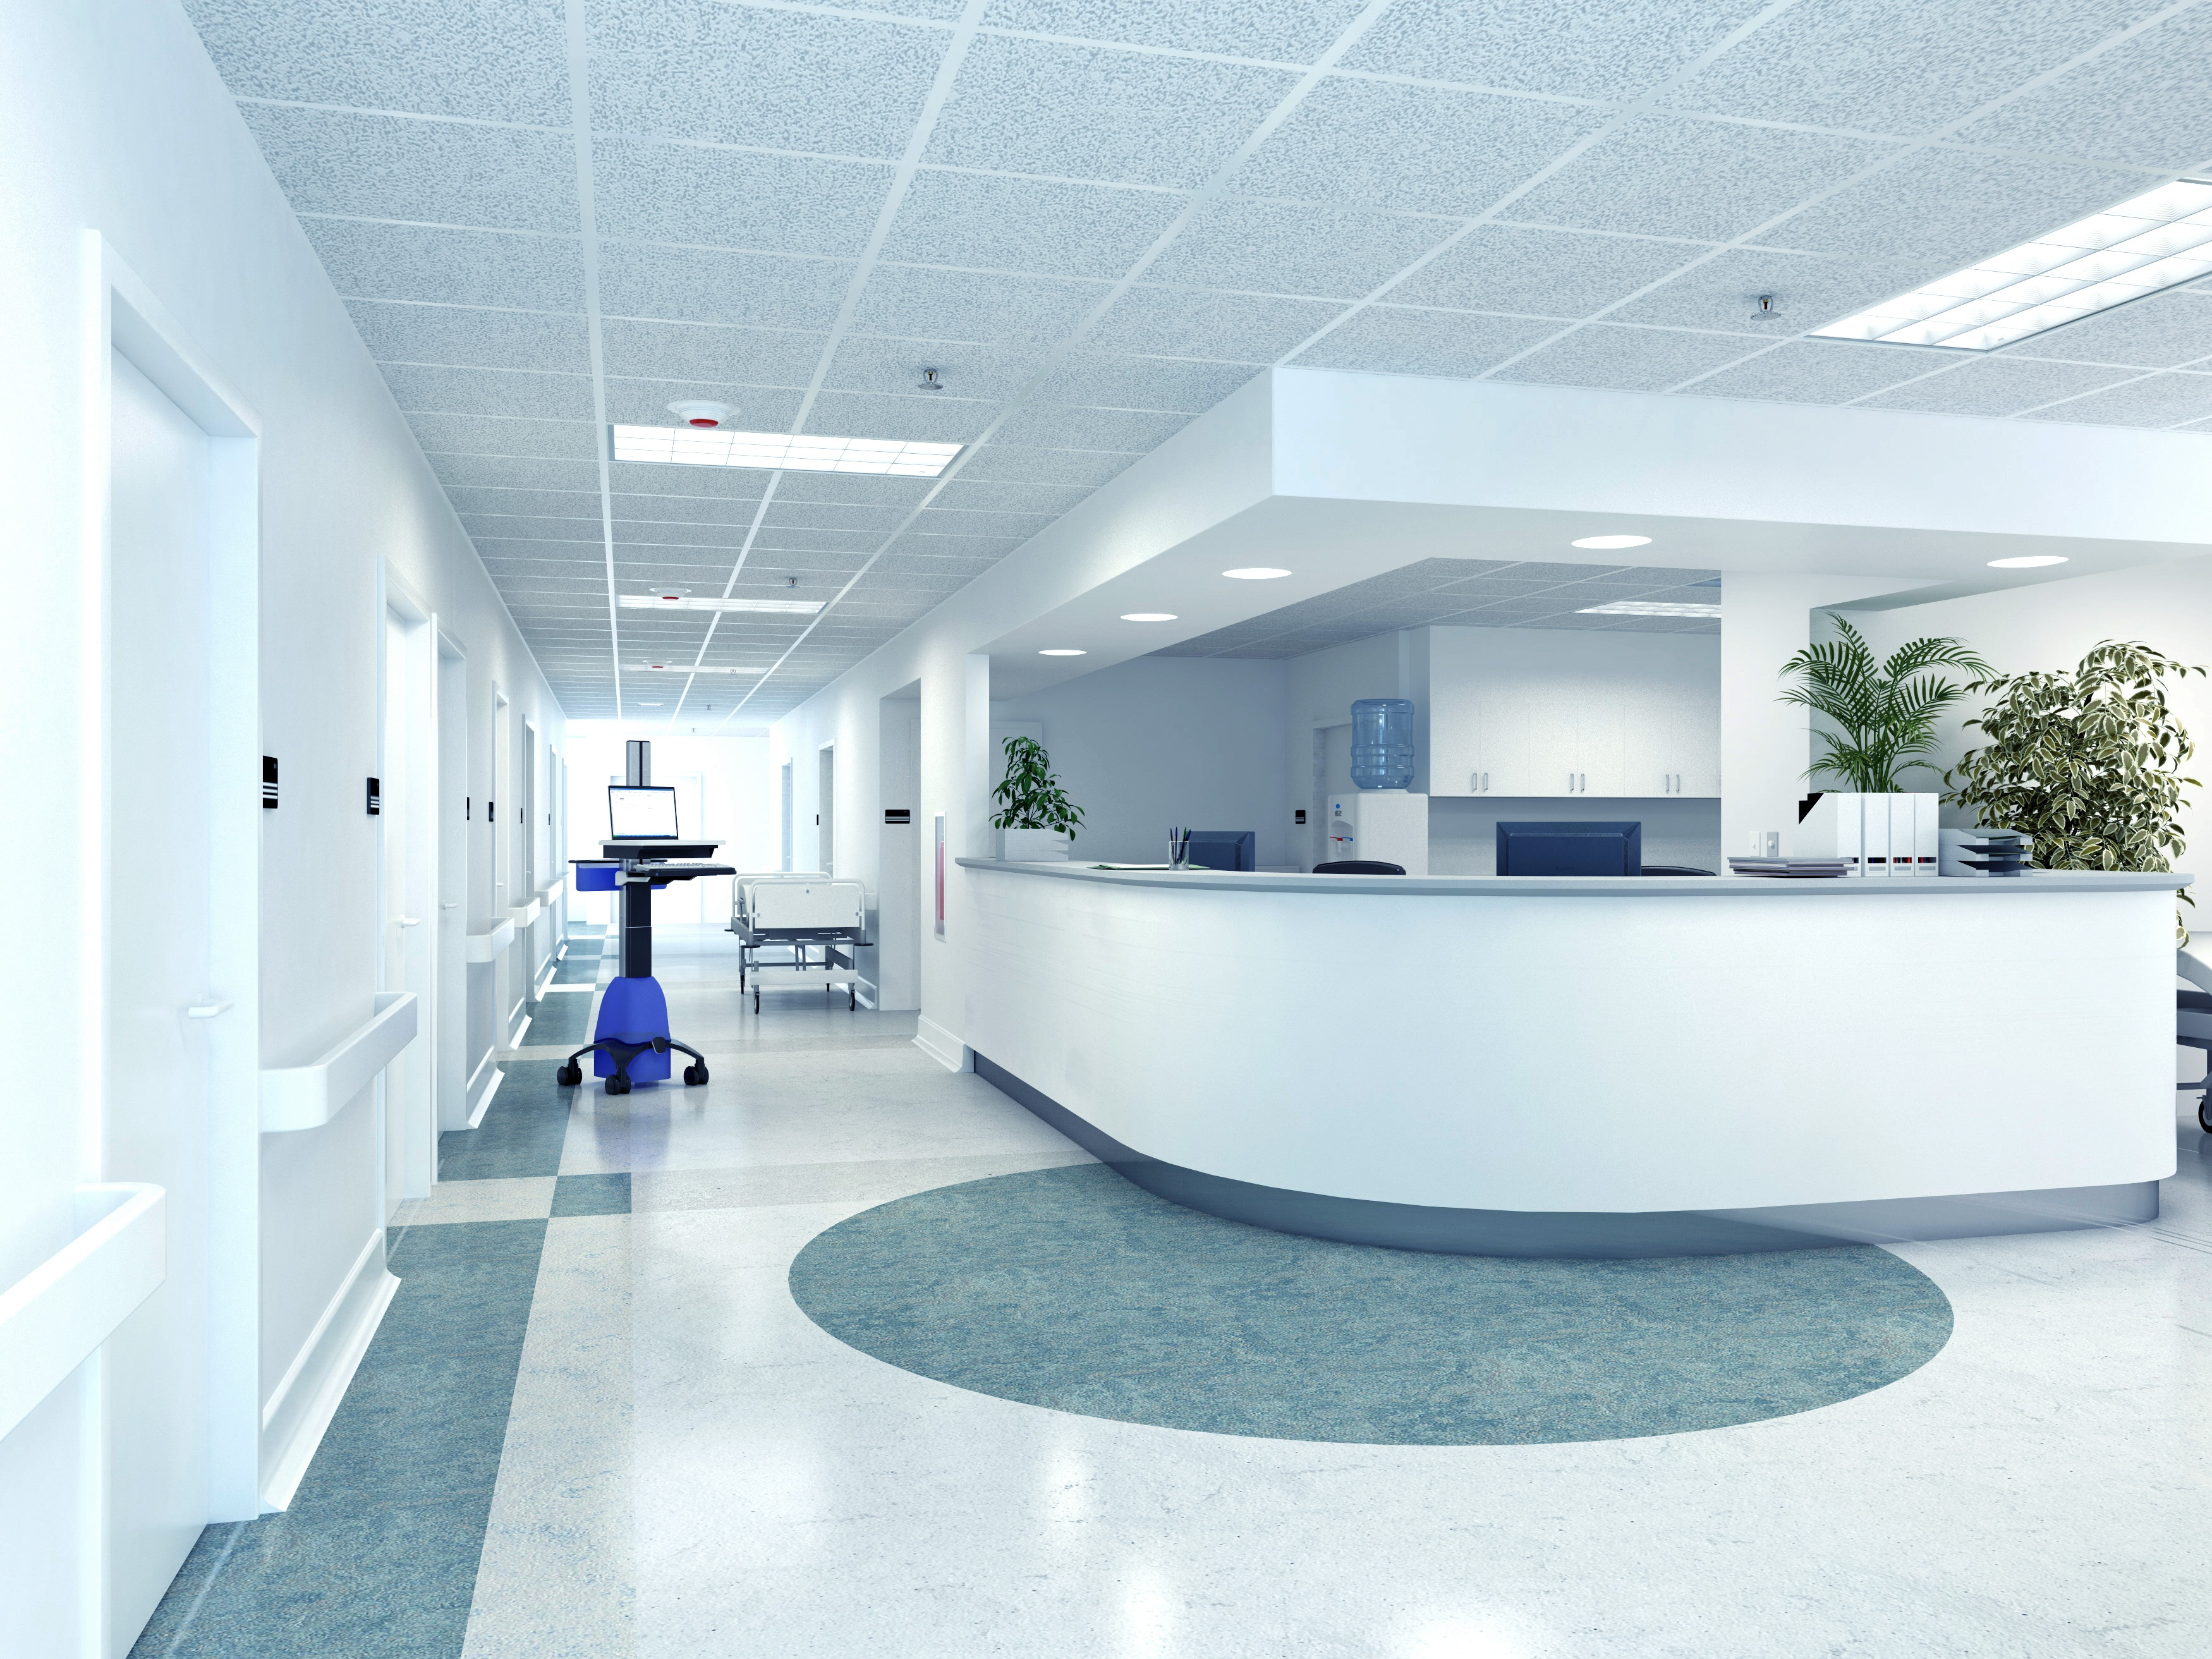 Building_Automation_-_Critical_Care_-_Nurse_Station.jpg